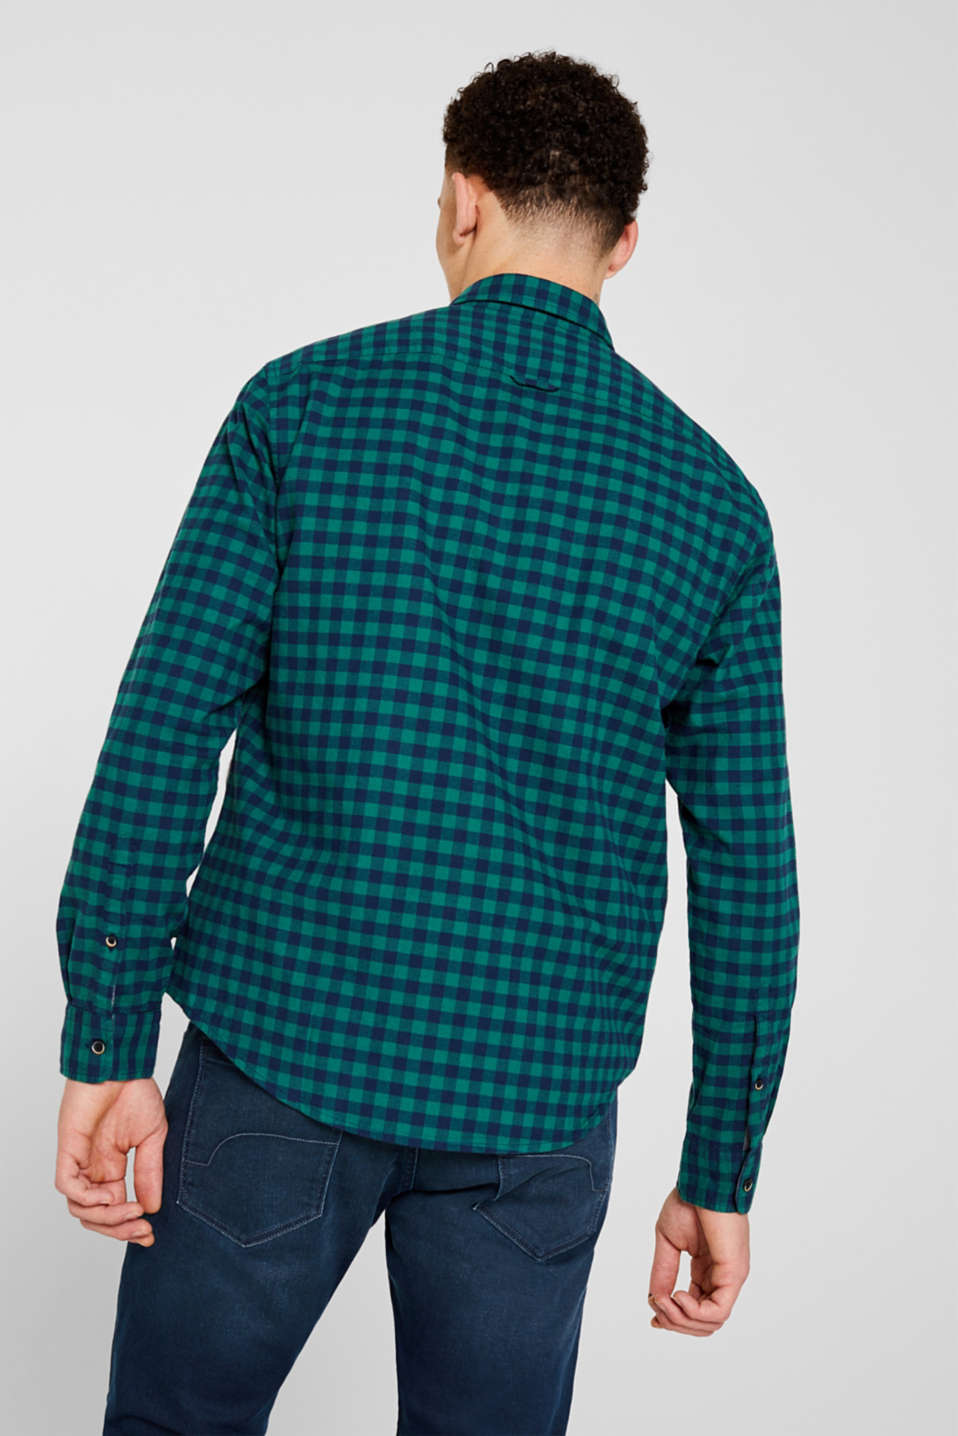 Flannel shirt with checks, made of stretch cotton, DARK GREEN, detail image number 3